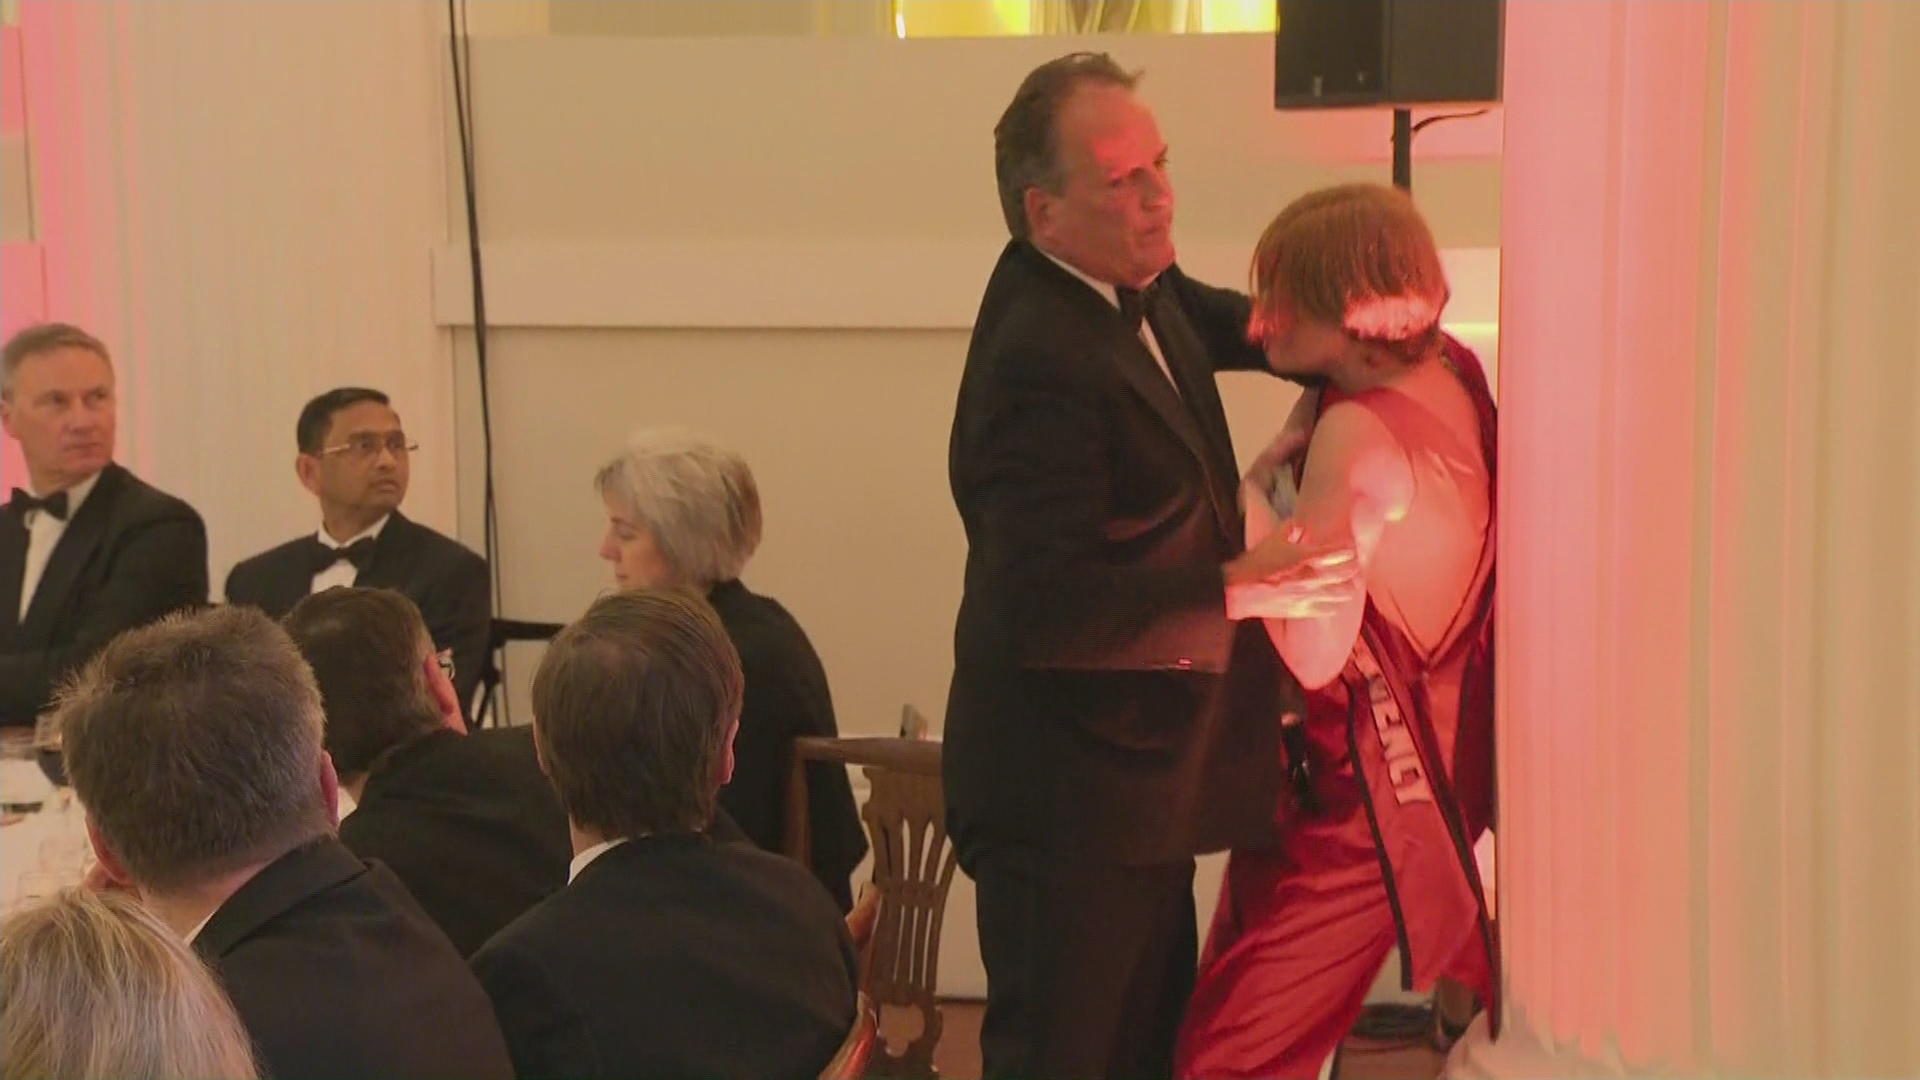 Tory MP Mark Field Filmed Grabbing Climate Protester Who Interrupted Philip Hammond's Speech